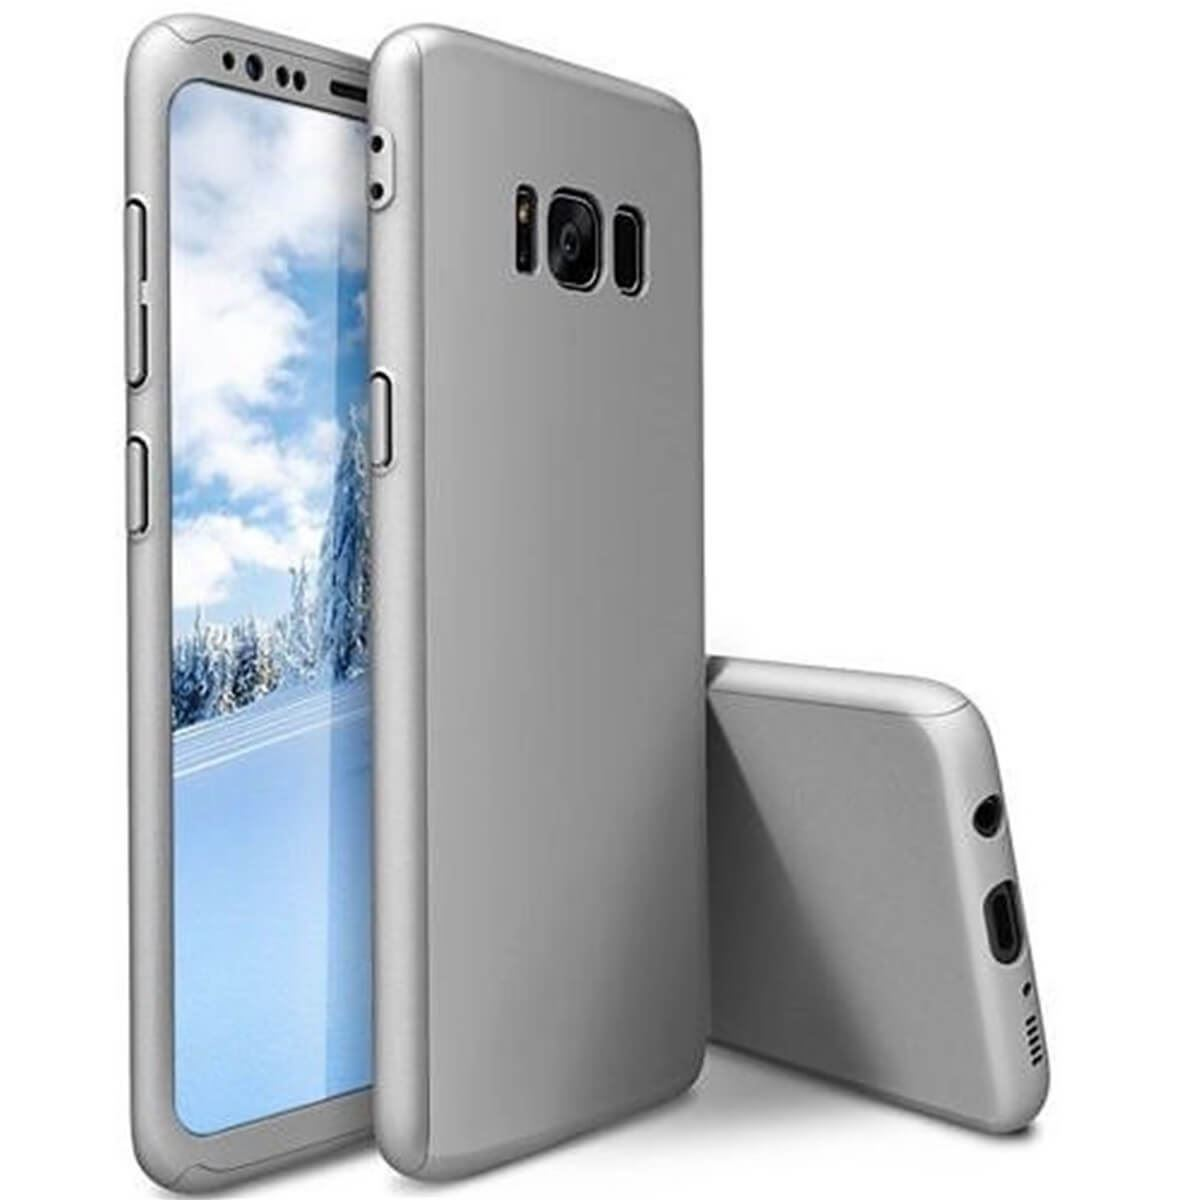 ShockProof-Thin-Case-For-Samsung-Galaxy-S7-edge-S8-Plus-Hybrid-360-TPU-Cover thumbnail 16